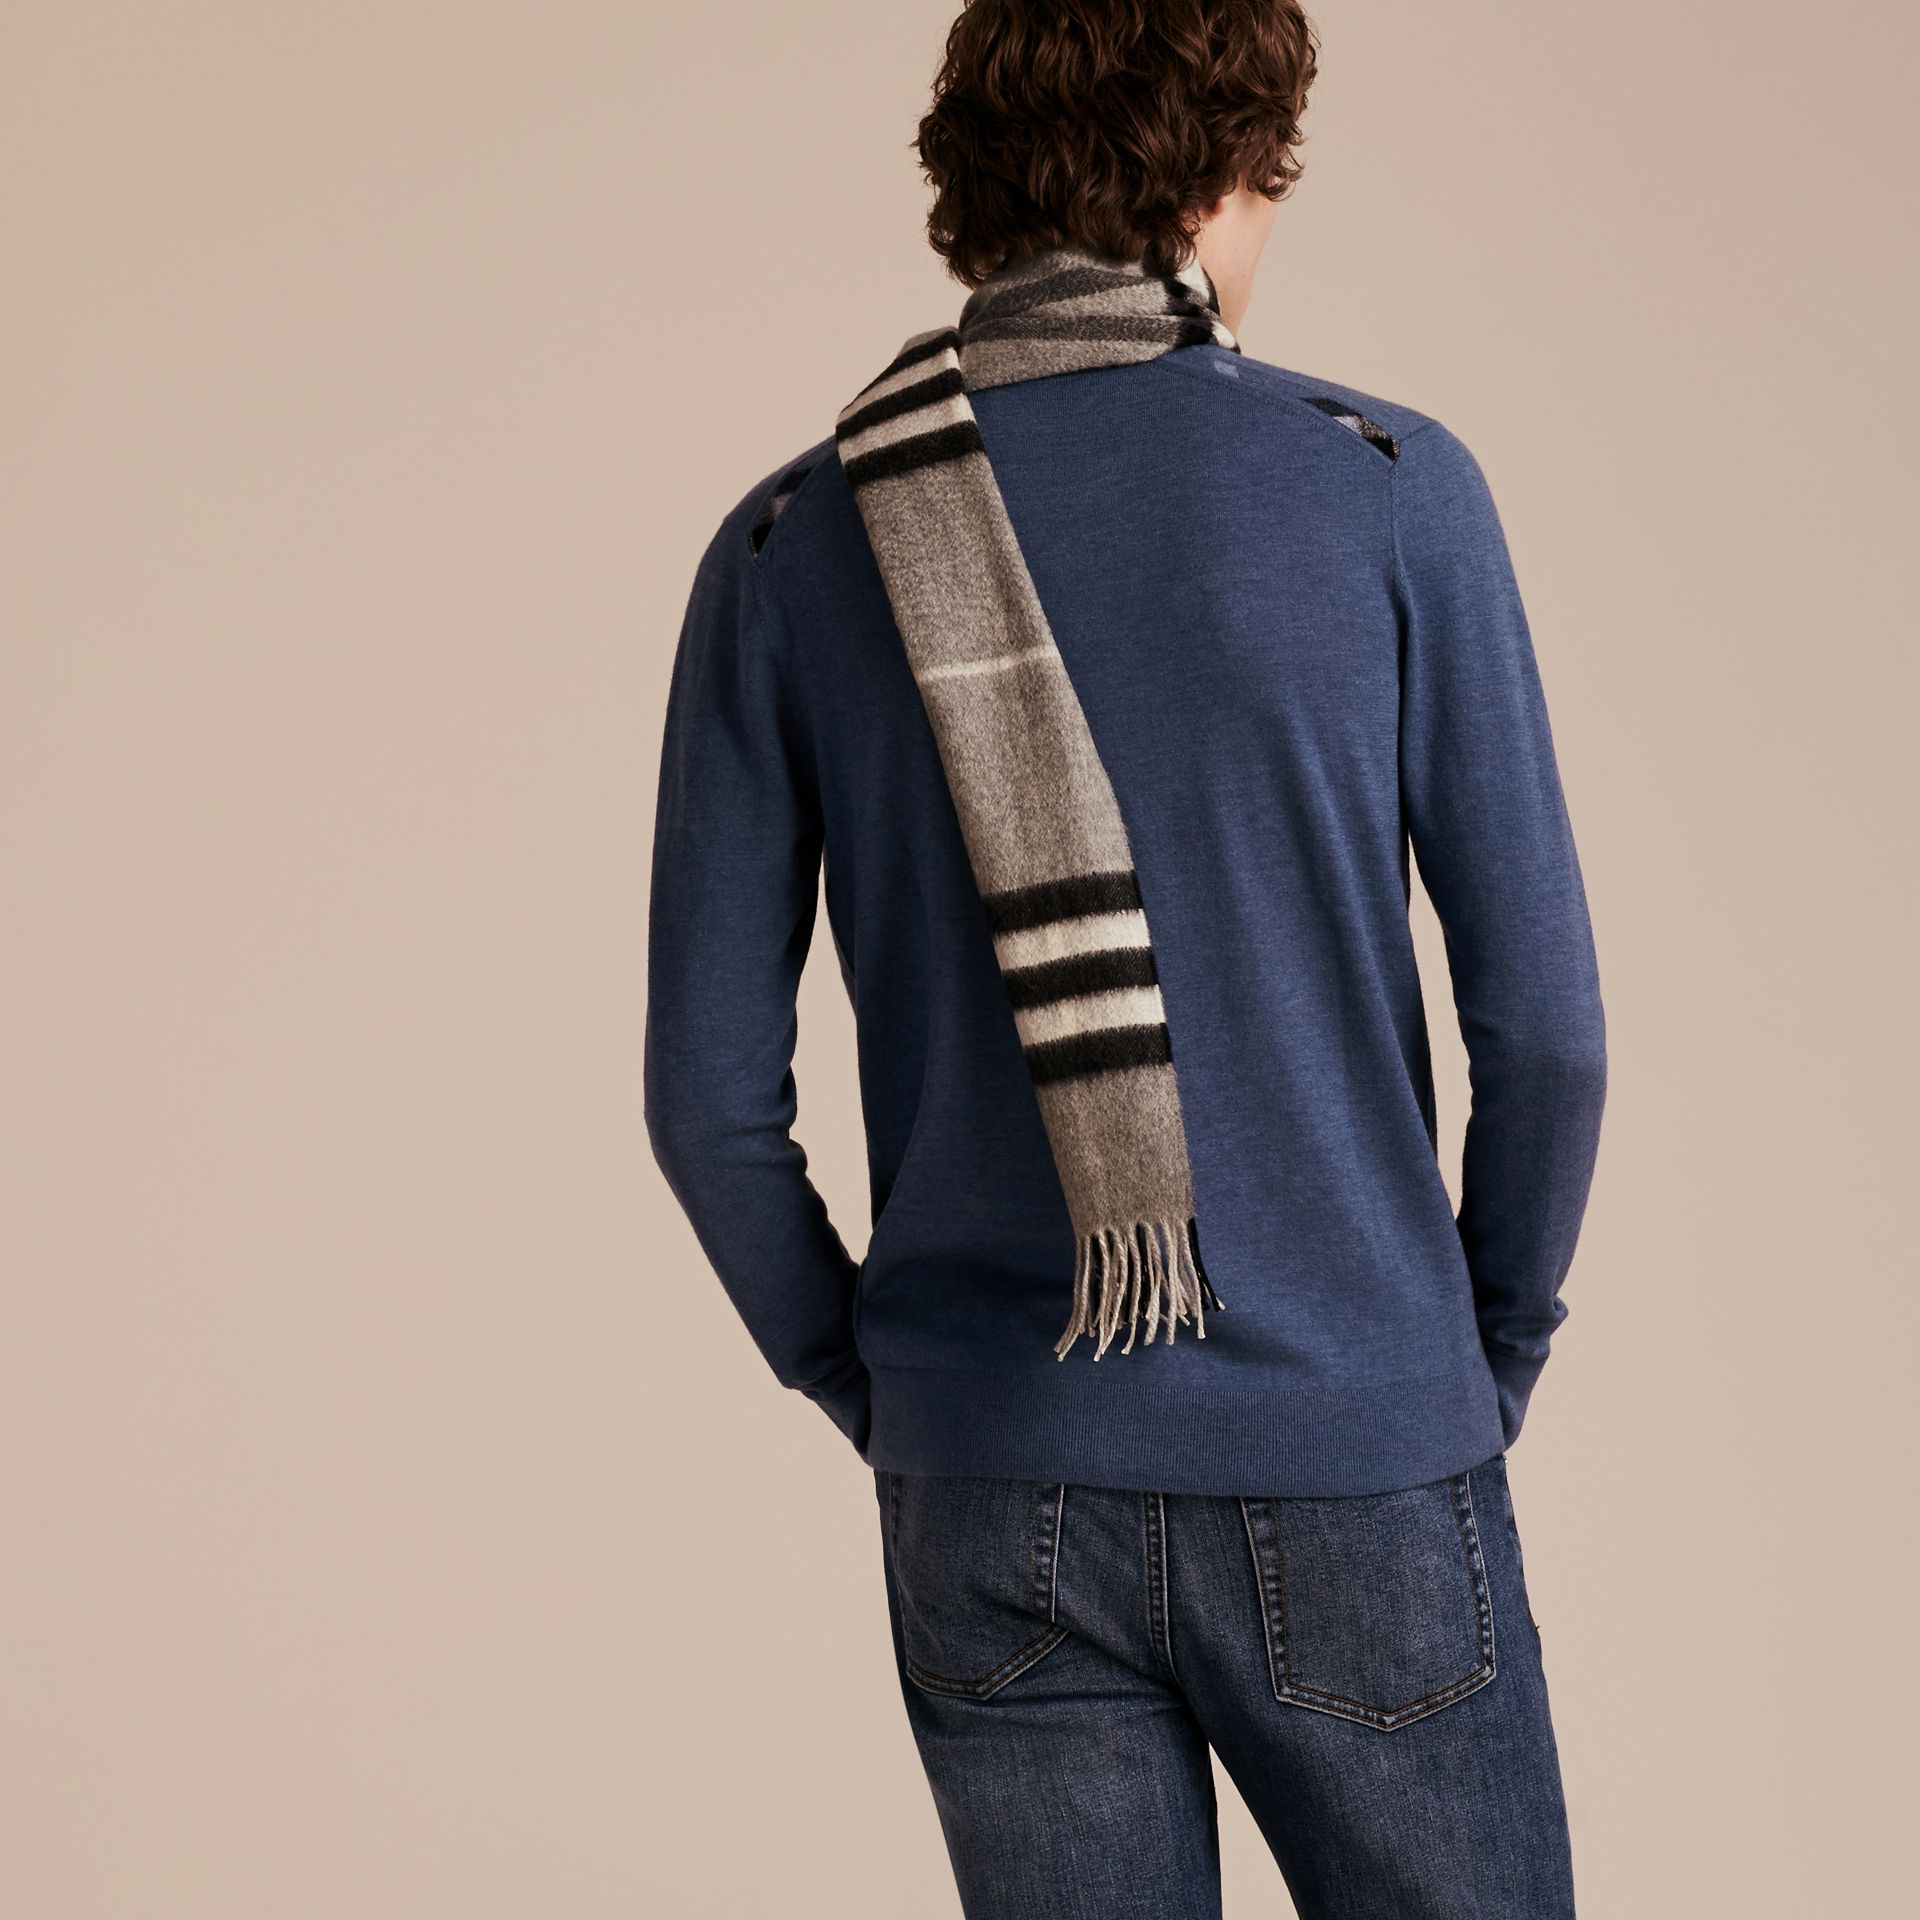 Check Jacquard Detail Cashmere Sweater in Dusty Blue - Men | Burberry United States - gallery image 2